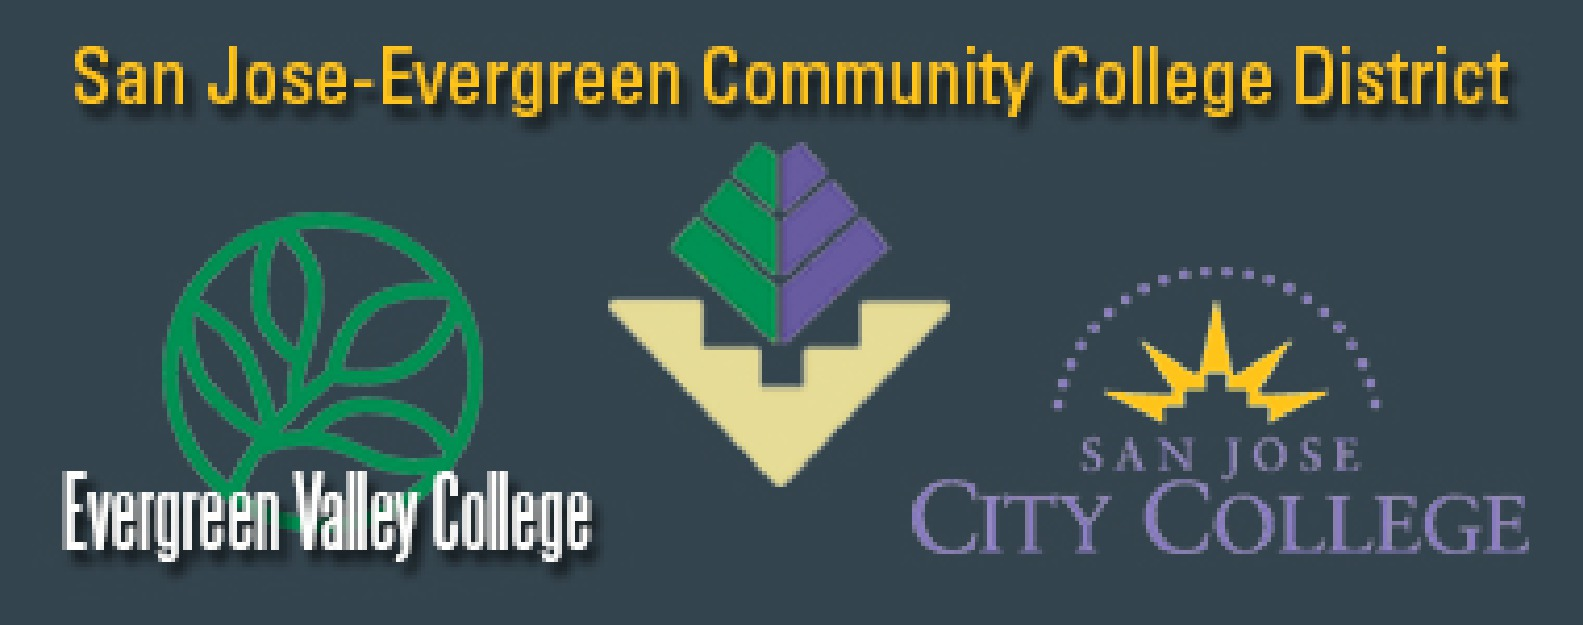 San Jose / Evergreen Community College District